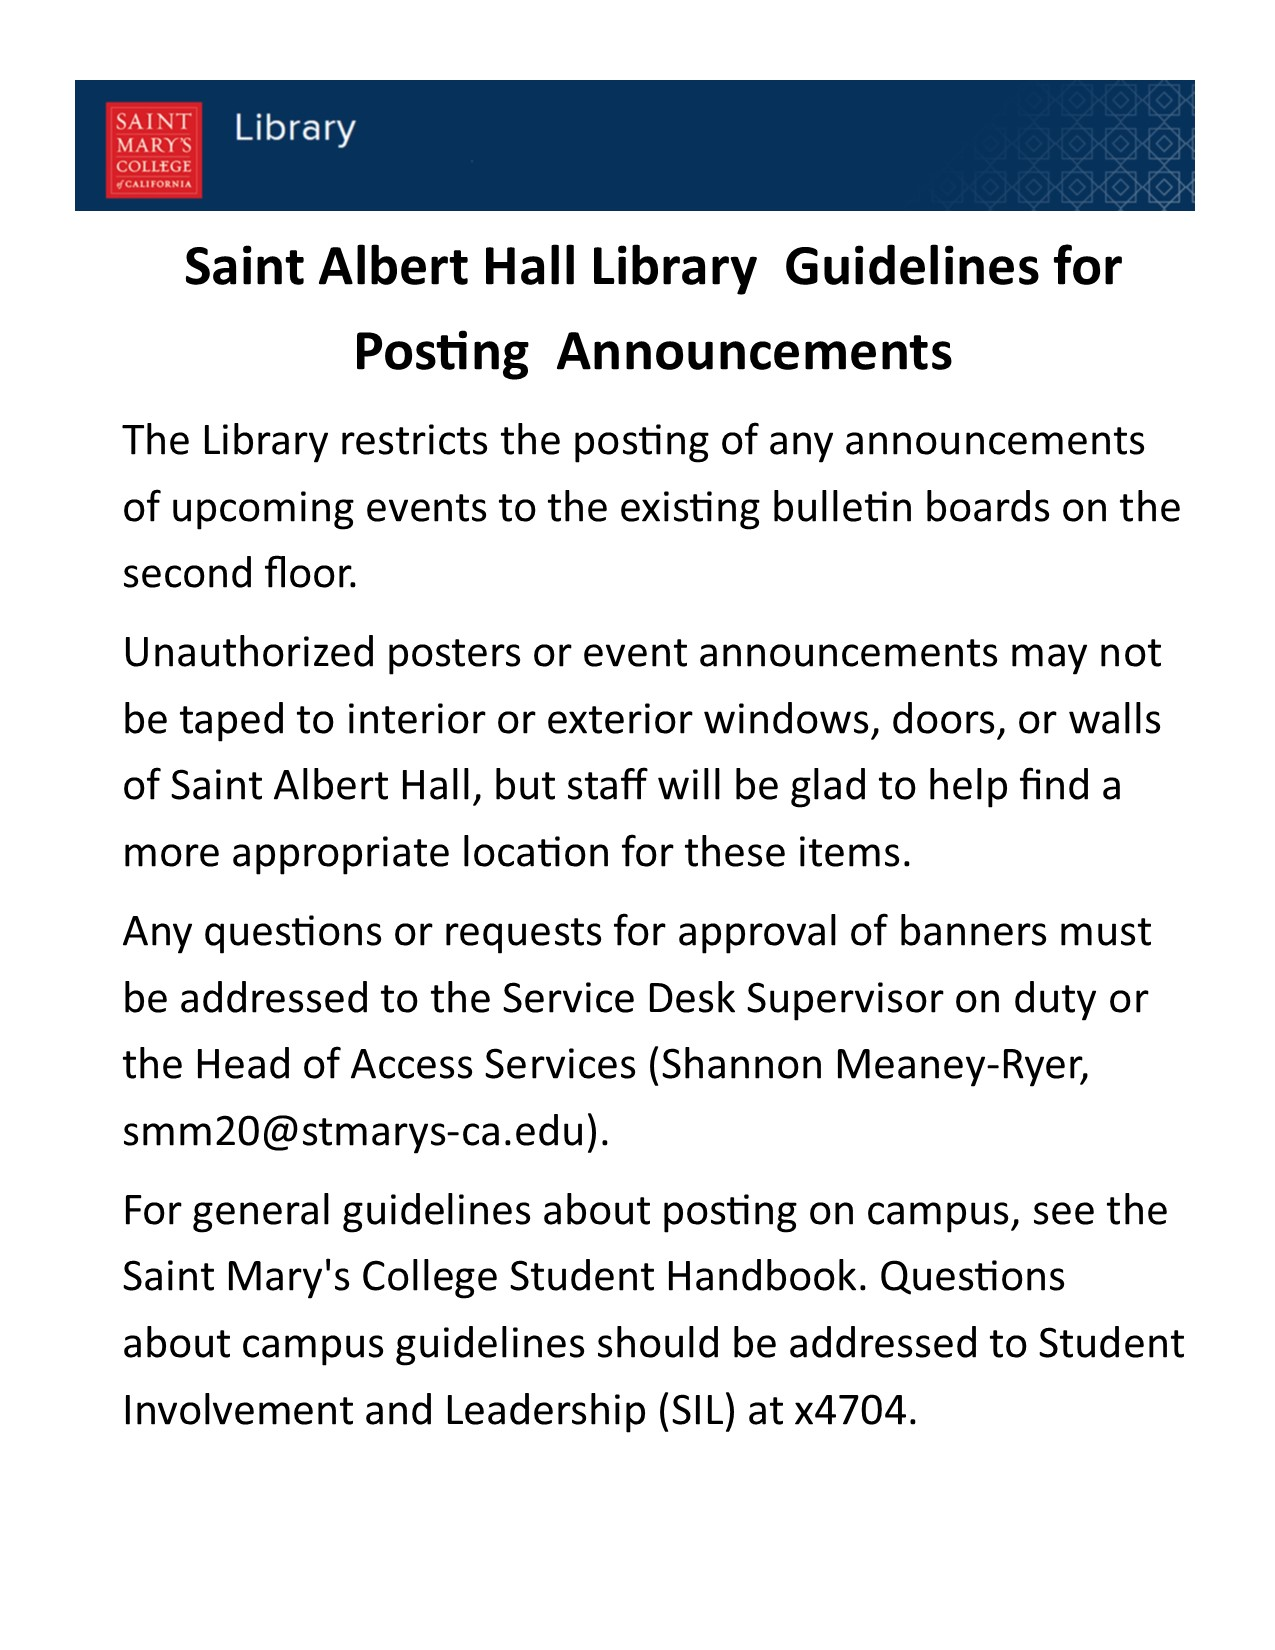 Guidelines for posting in the library